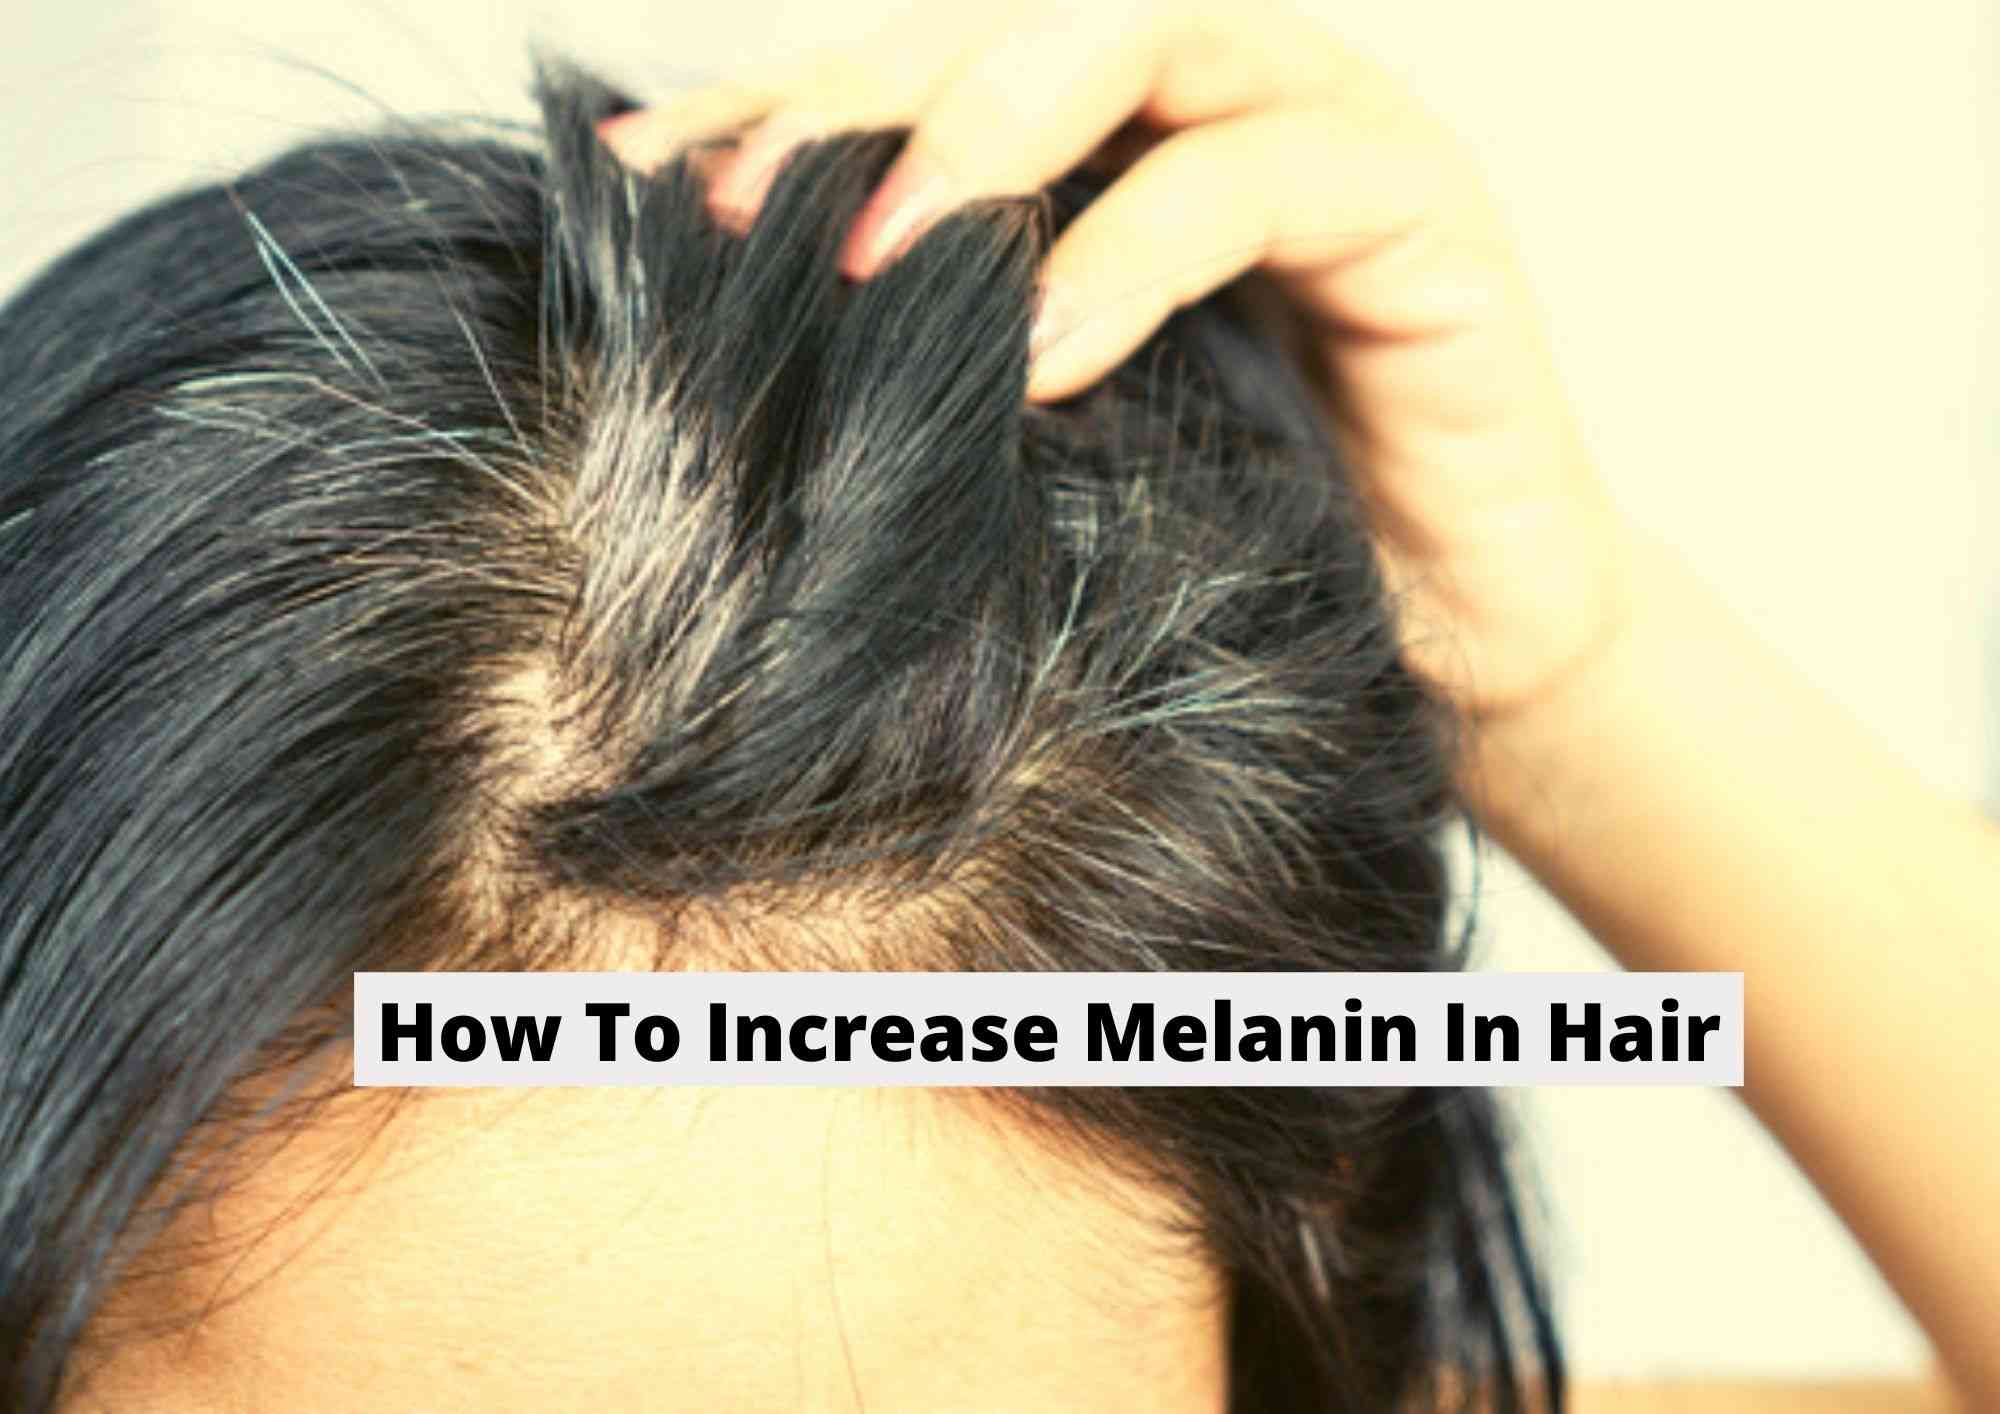 How To Increase Melanin in Hair Naturally 2021